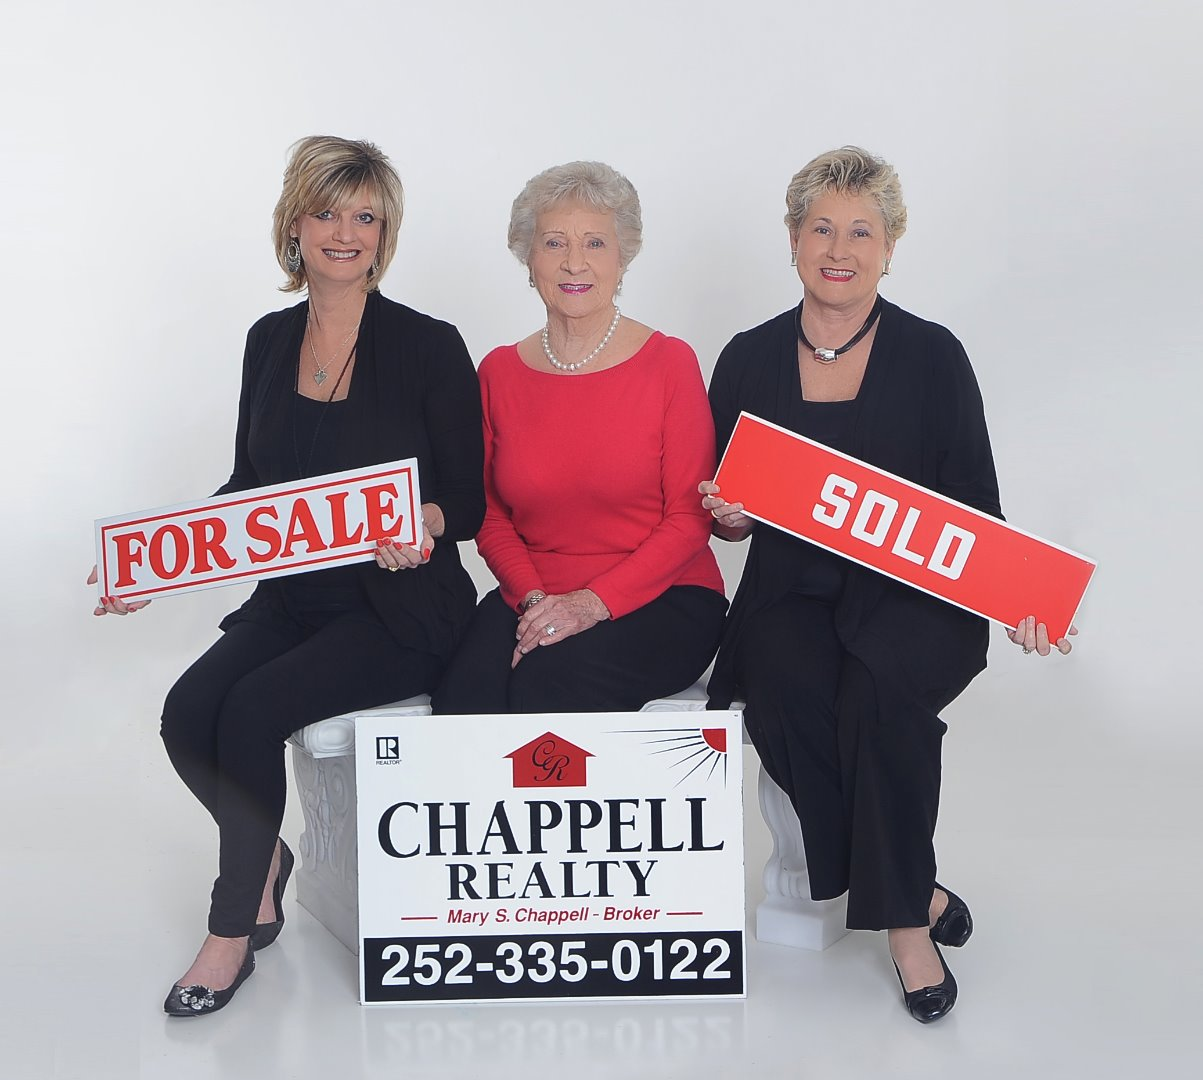 The Chappell Team